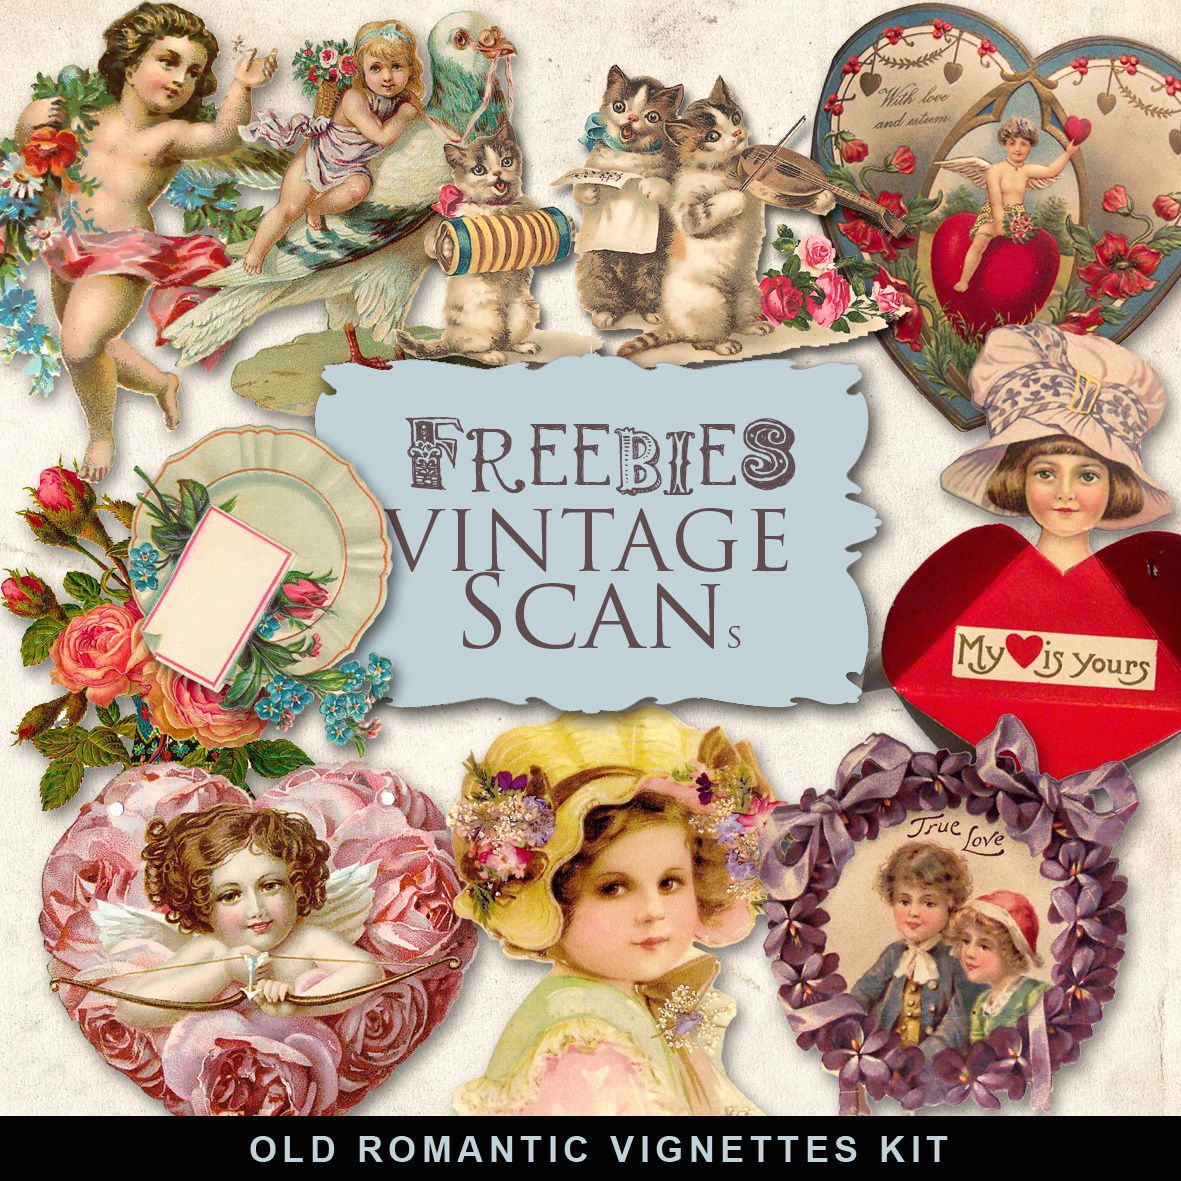 romantic,romance,vignettes,be,mine,vintage,set,scrap,kit,free,Page,Scrapbooking,Sketche,digital,layout,bases,techniques,dérivés,kits,freebies,fathia,nasr,scraps,valentine,day,saint,valentin,full,heart,cœur,lovey,amoureux,funky,